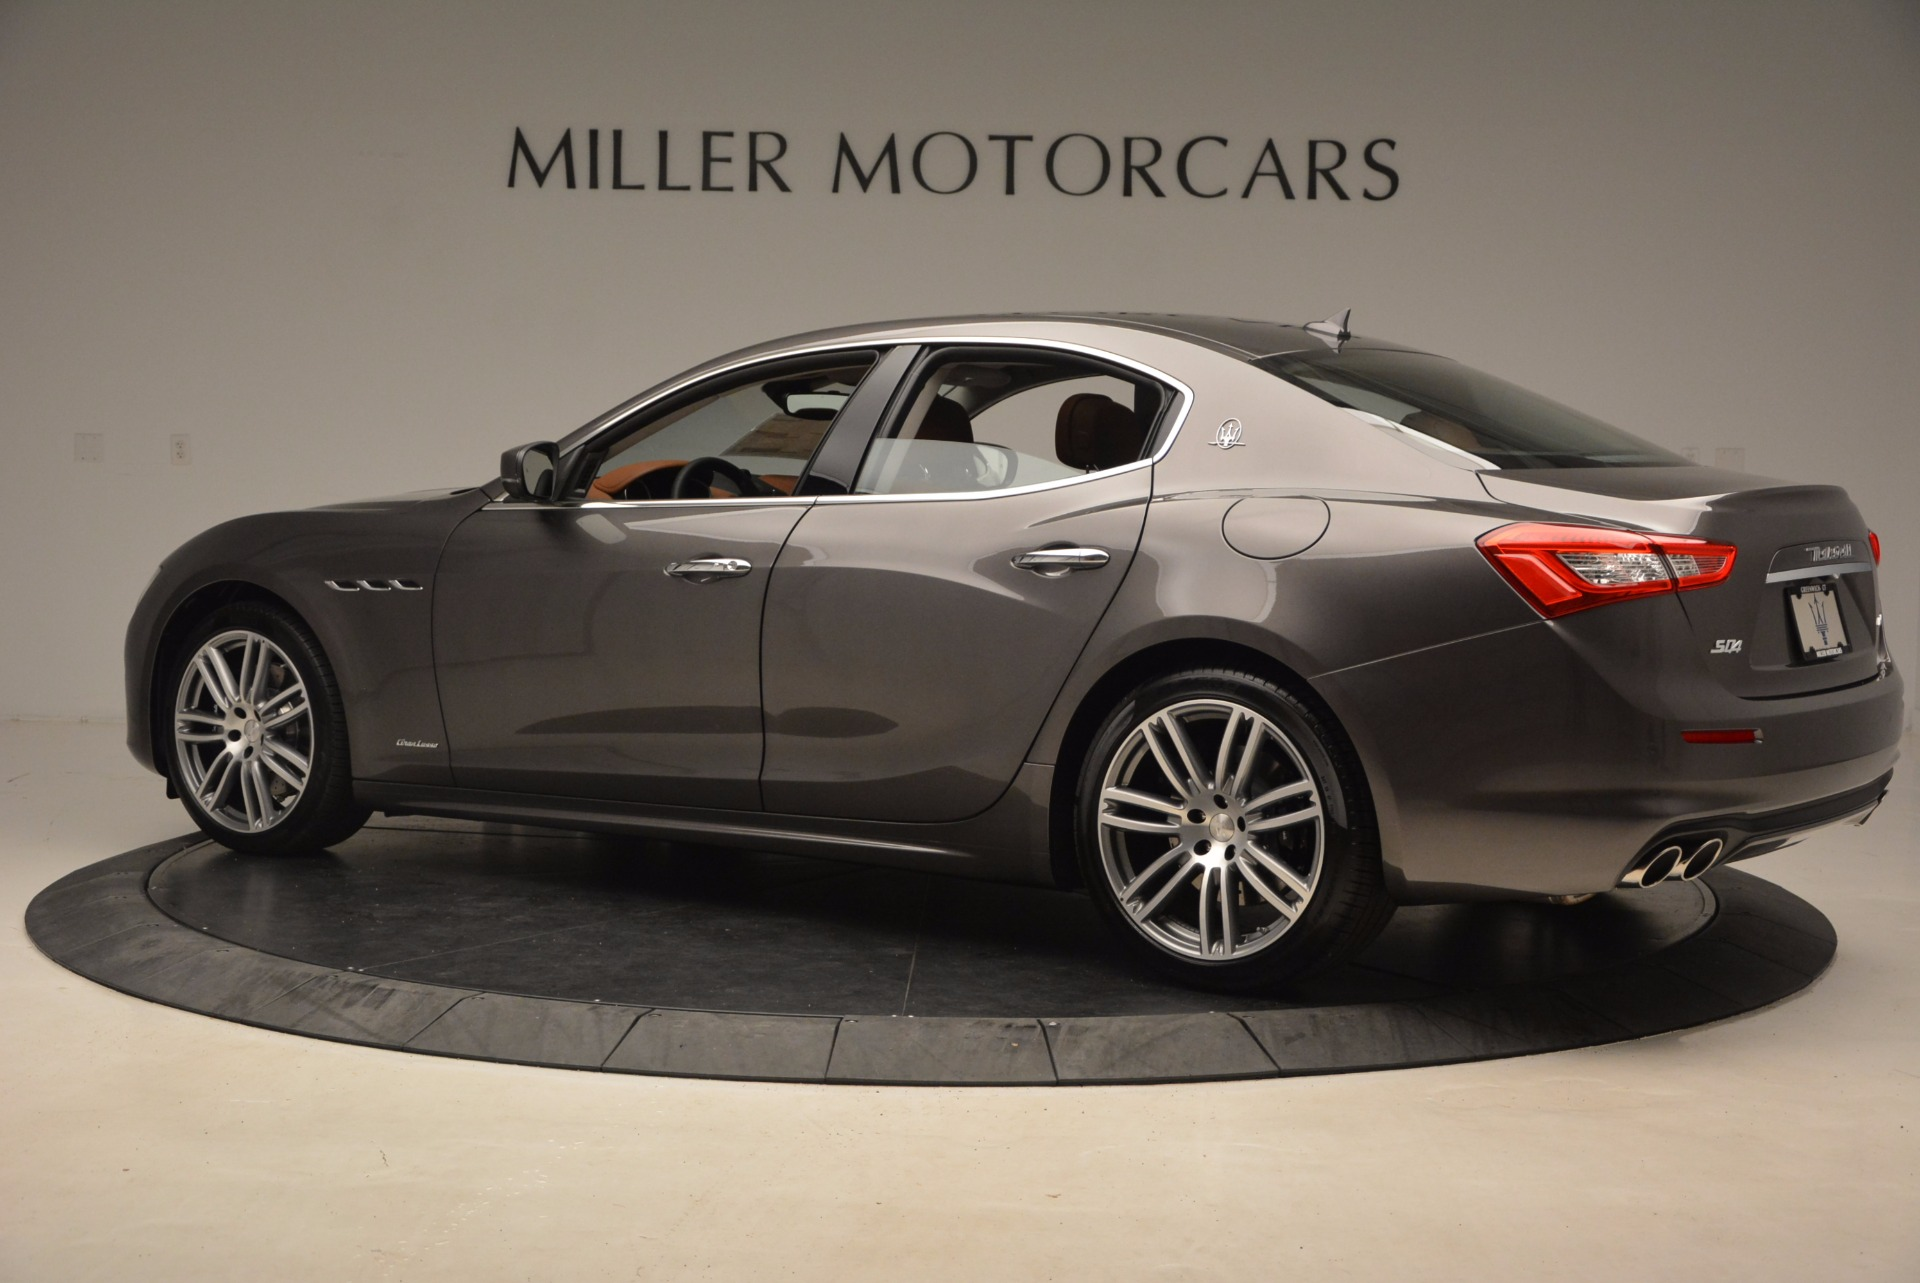 New 2018 Maserati Ghibli S Q4 GranLusso For Sale 0 In Greenwich, CT